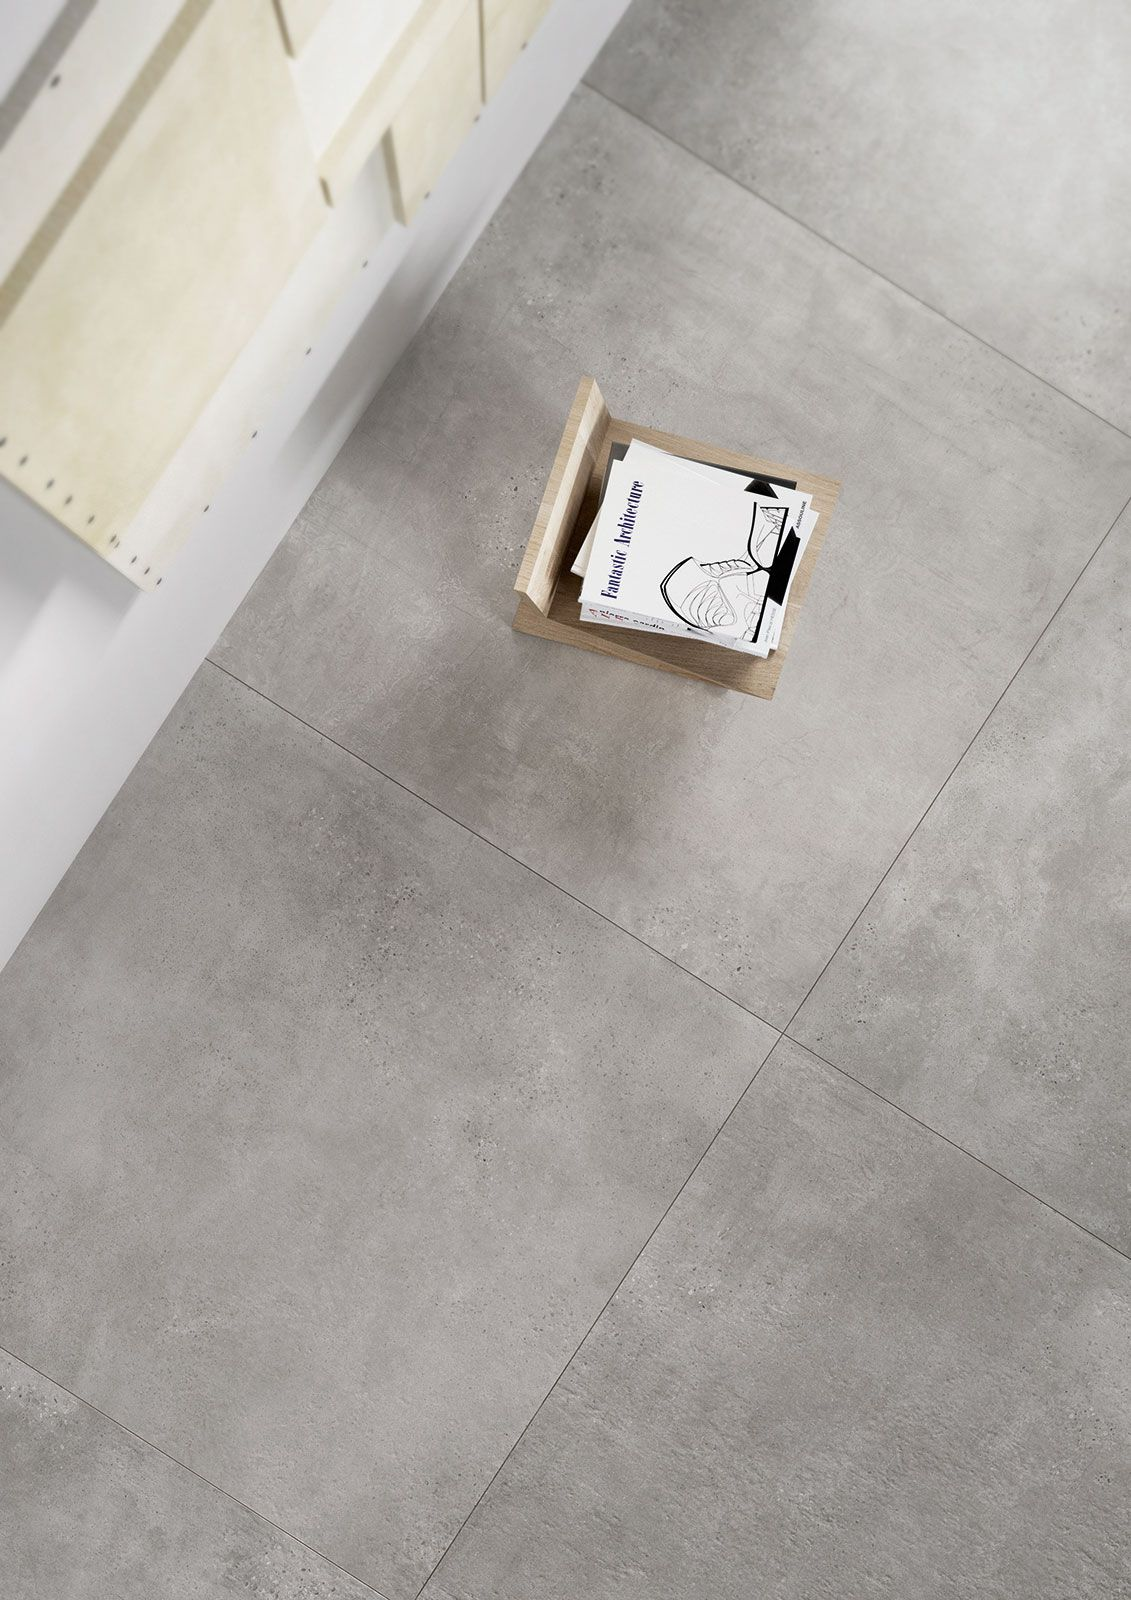 Xlstreet ceramic tiles marazzi6736 floors pinterest salons xlstreet ceramic tiles marazzi6736 dailygadgetfo Choice Image